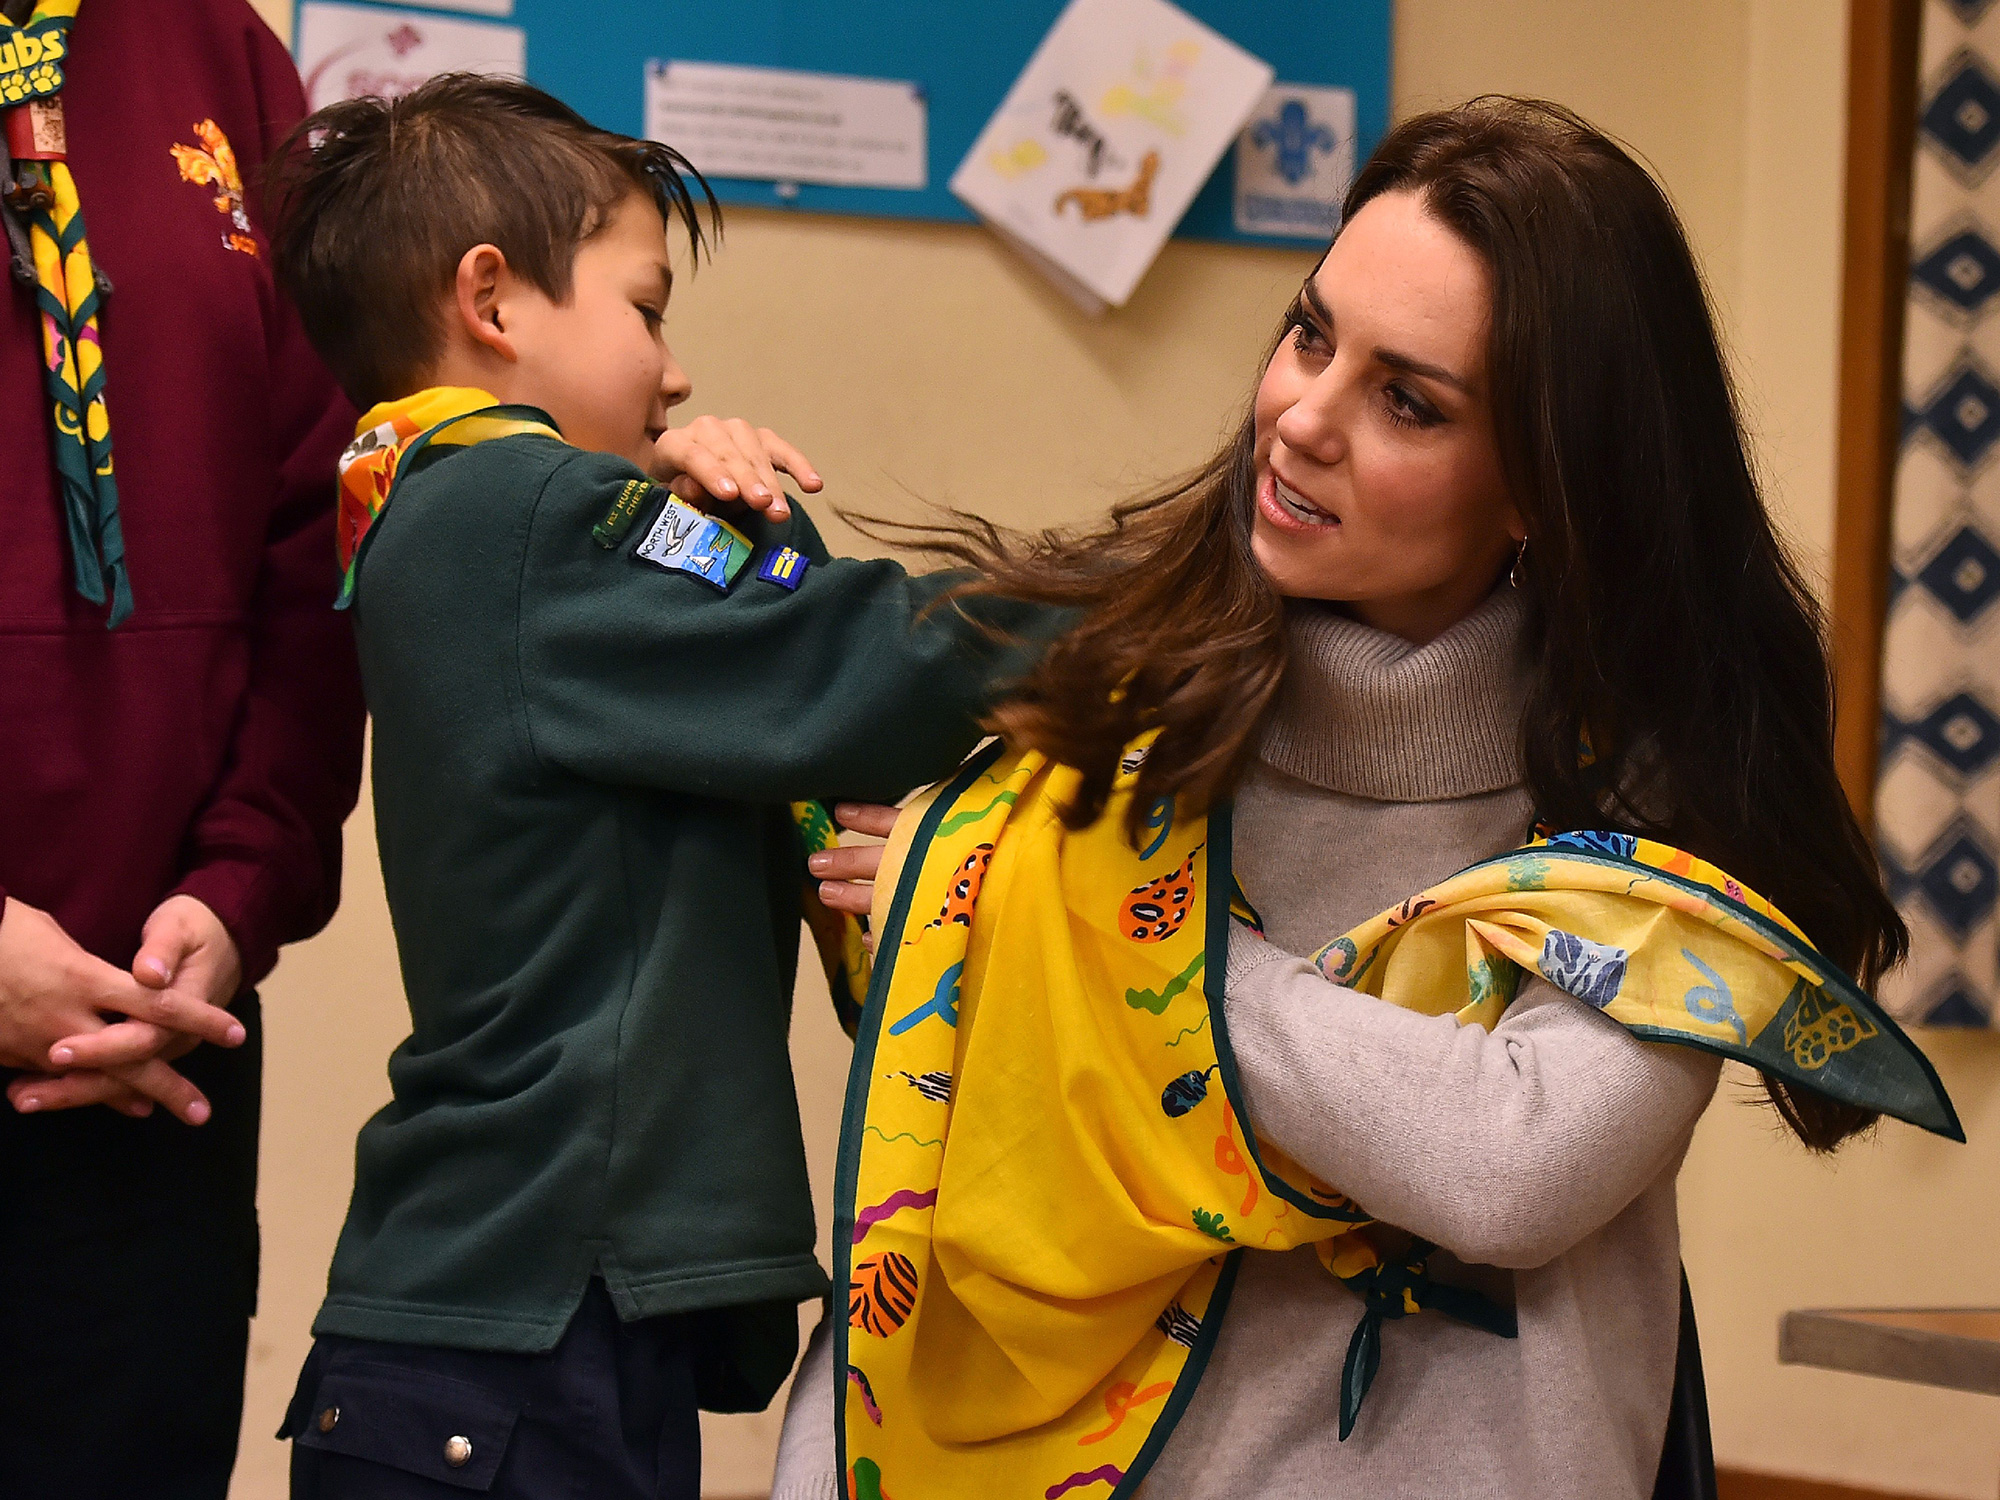 A cub scout uses a neckerchief to show Britain's Catherine, Duchess of Cambridge, how to support a broken arm, during a Cub Scout Pack meeting with cubs from the Kings Lynn District, in Kings Lynn, eastern England, on December 14, 2016, to celebrate 100 years of Cubs. The Duchess attended a special Cub Scout Pack meeting with Cubs from the Kings Lynn District to celebrate 100 years of Cubs. Cub Scouting was co-founded by Robert Baden-Powell and Vera Barclay on the 16th December 1916. / AFP / POOL / BEN STANSALL (Photo credit should read BEN STANSALL/AFP/Getty Images)